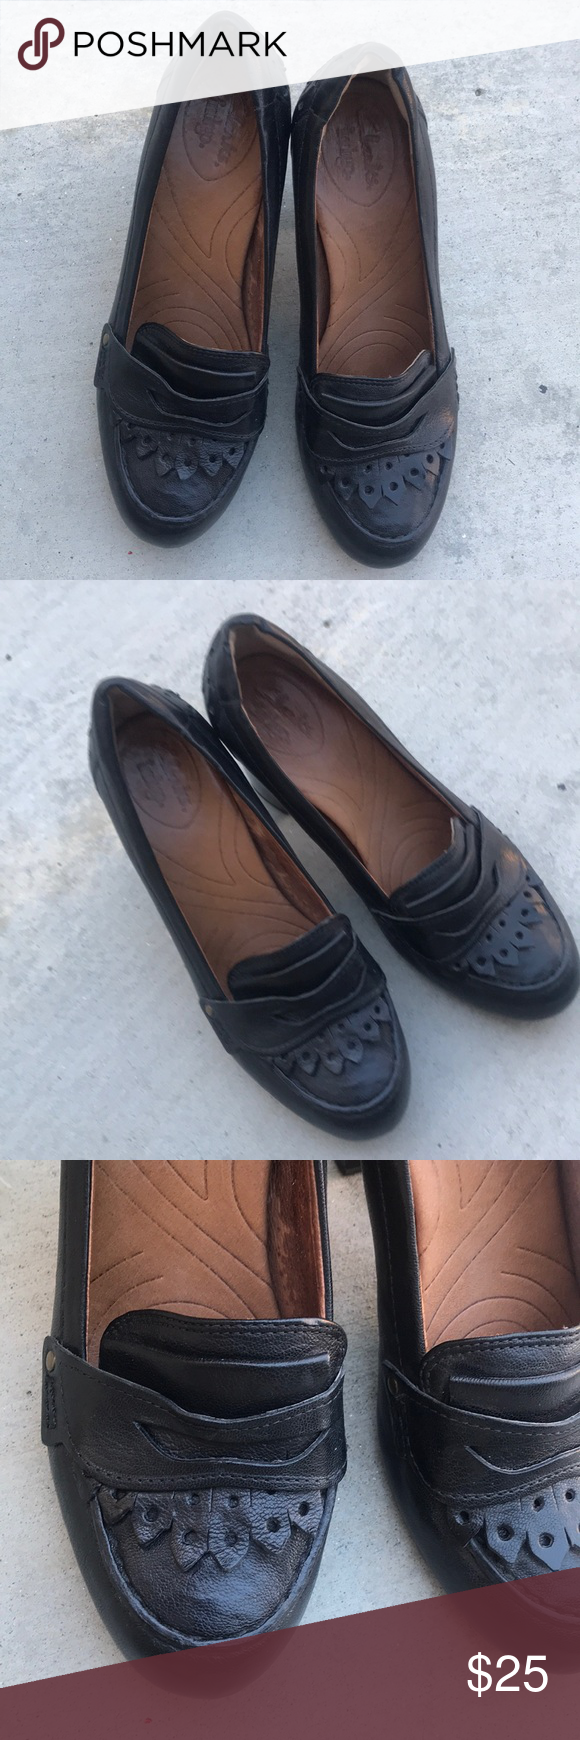 """6cdac195590 Clarks Indigo Town Leather Kiltie Penny Loafer Penny loafers in excellent  condition Al leather upper Approximately 3.25"""" heel Beautiful detail Super  ..."""